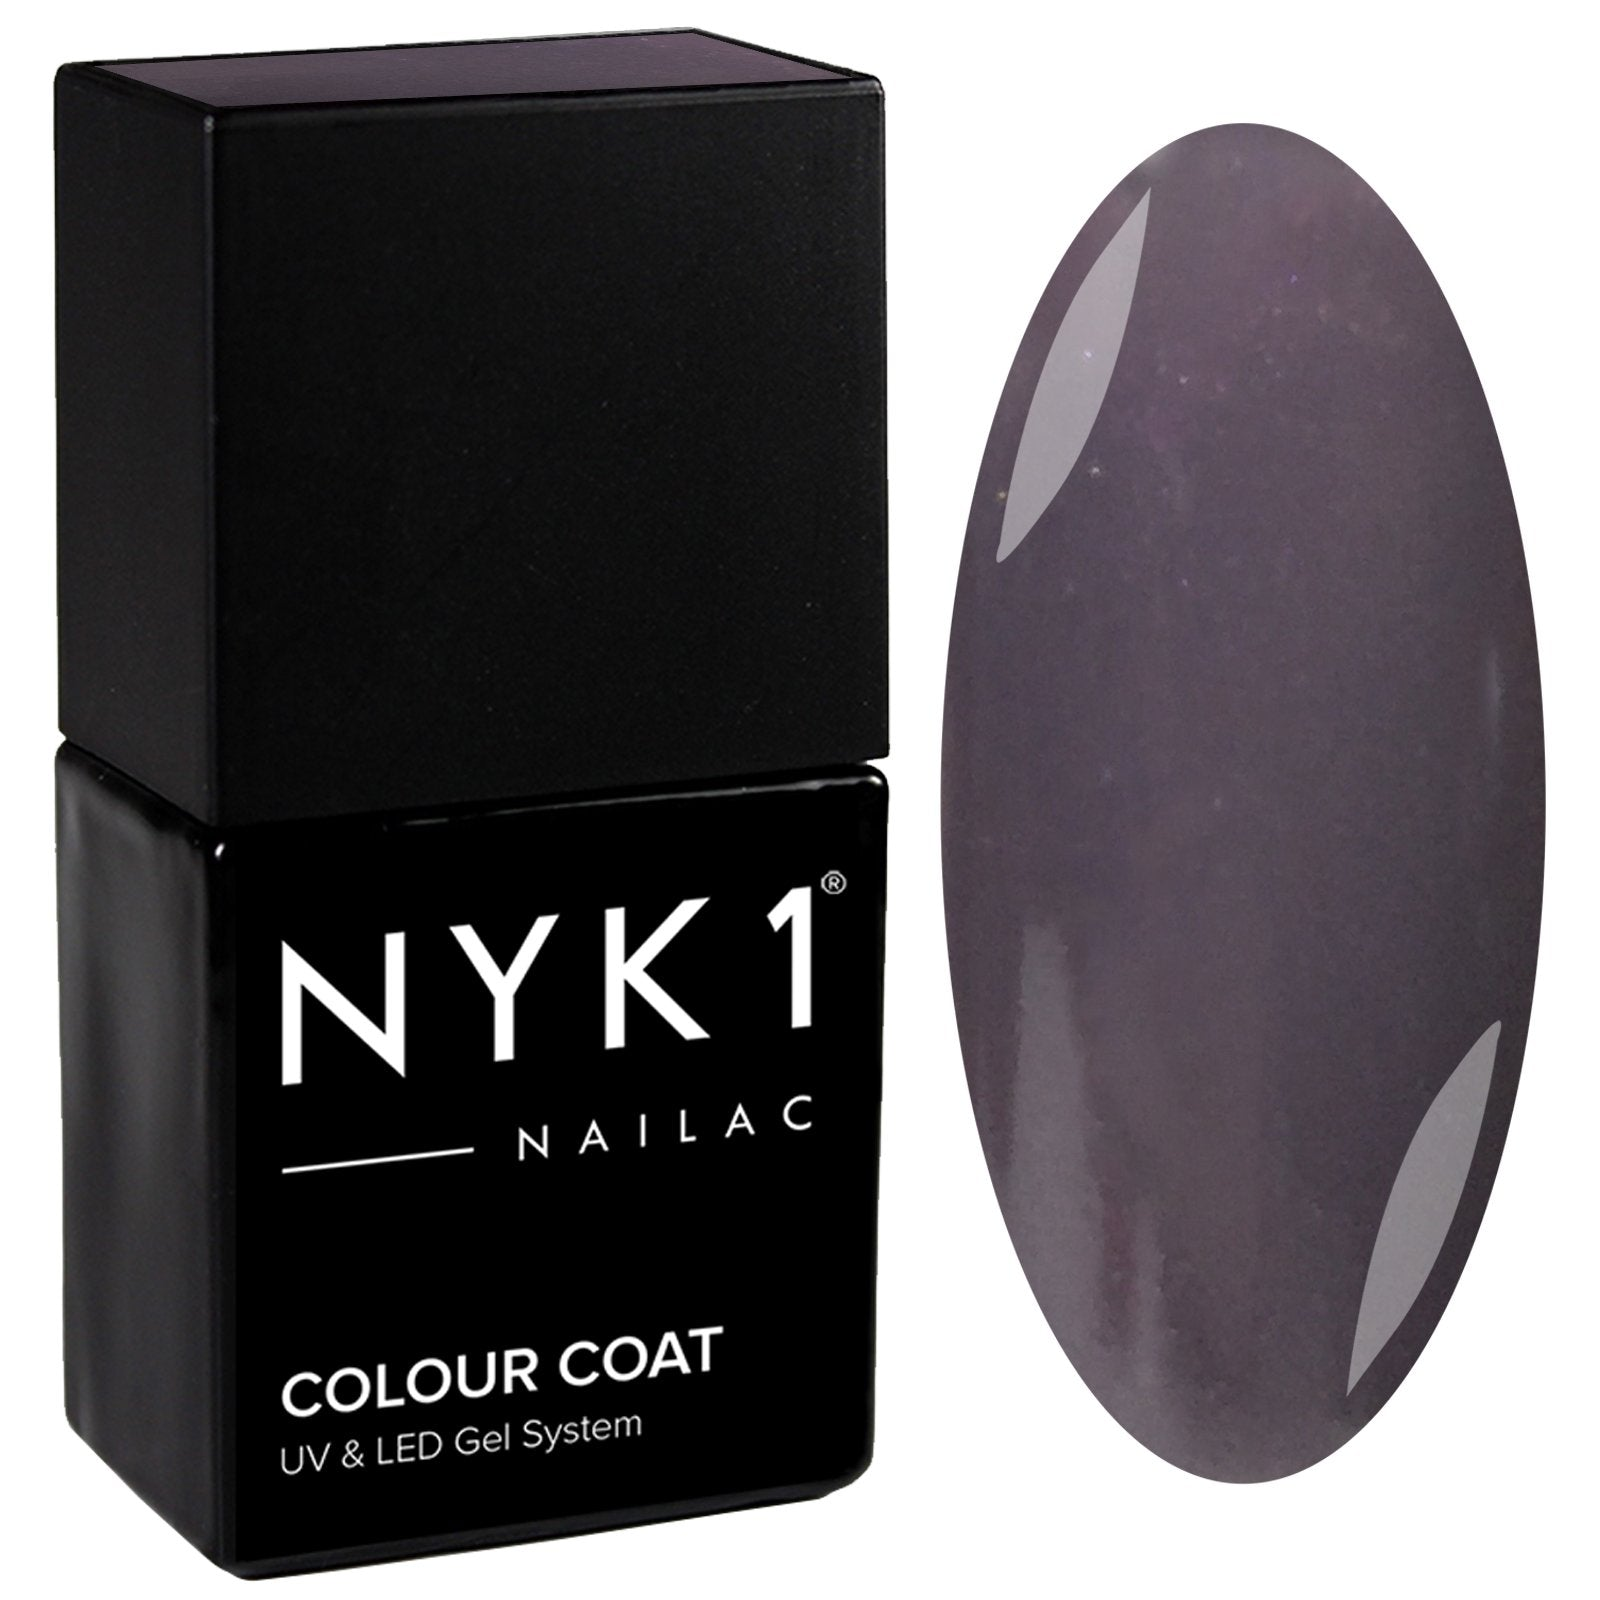 NYK1 Nailac Dolphin Slate Blue Grey Gloss Gel Nail Polish